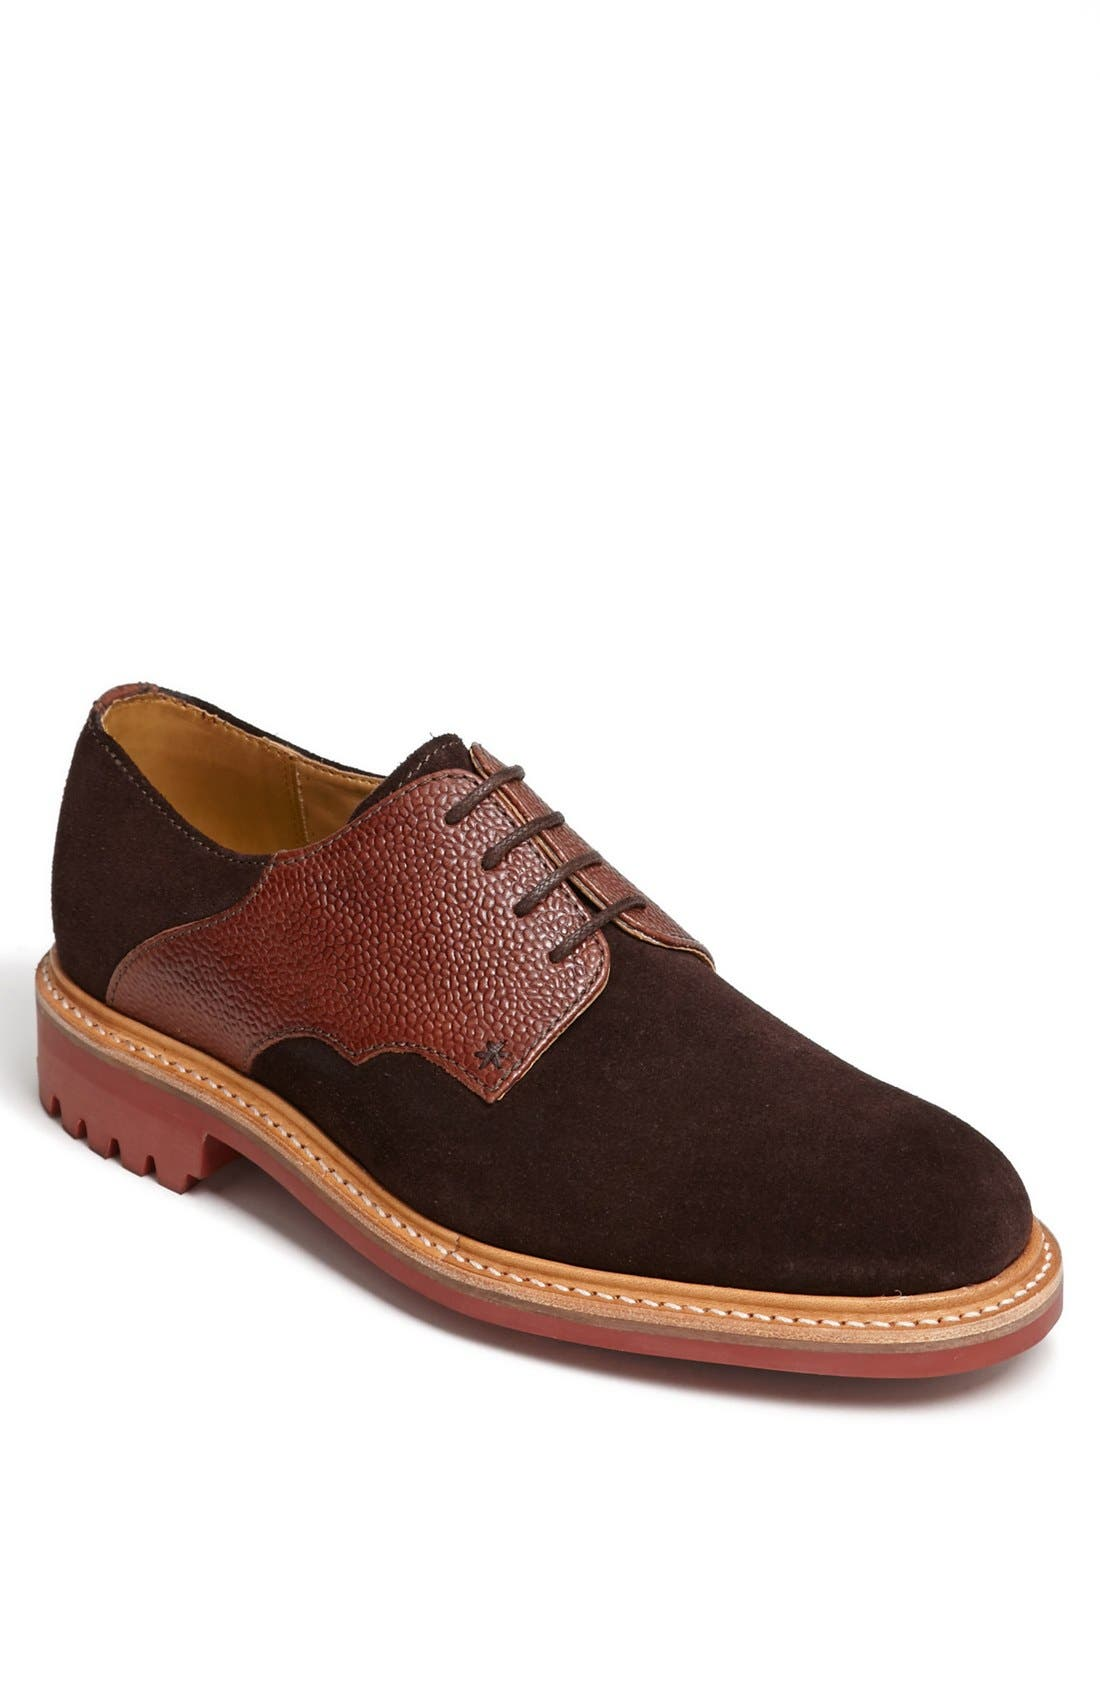 Main Image - Oliver Sweeney 'Sutton' Saddle Shoe